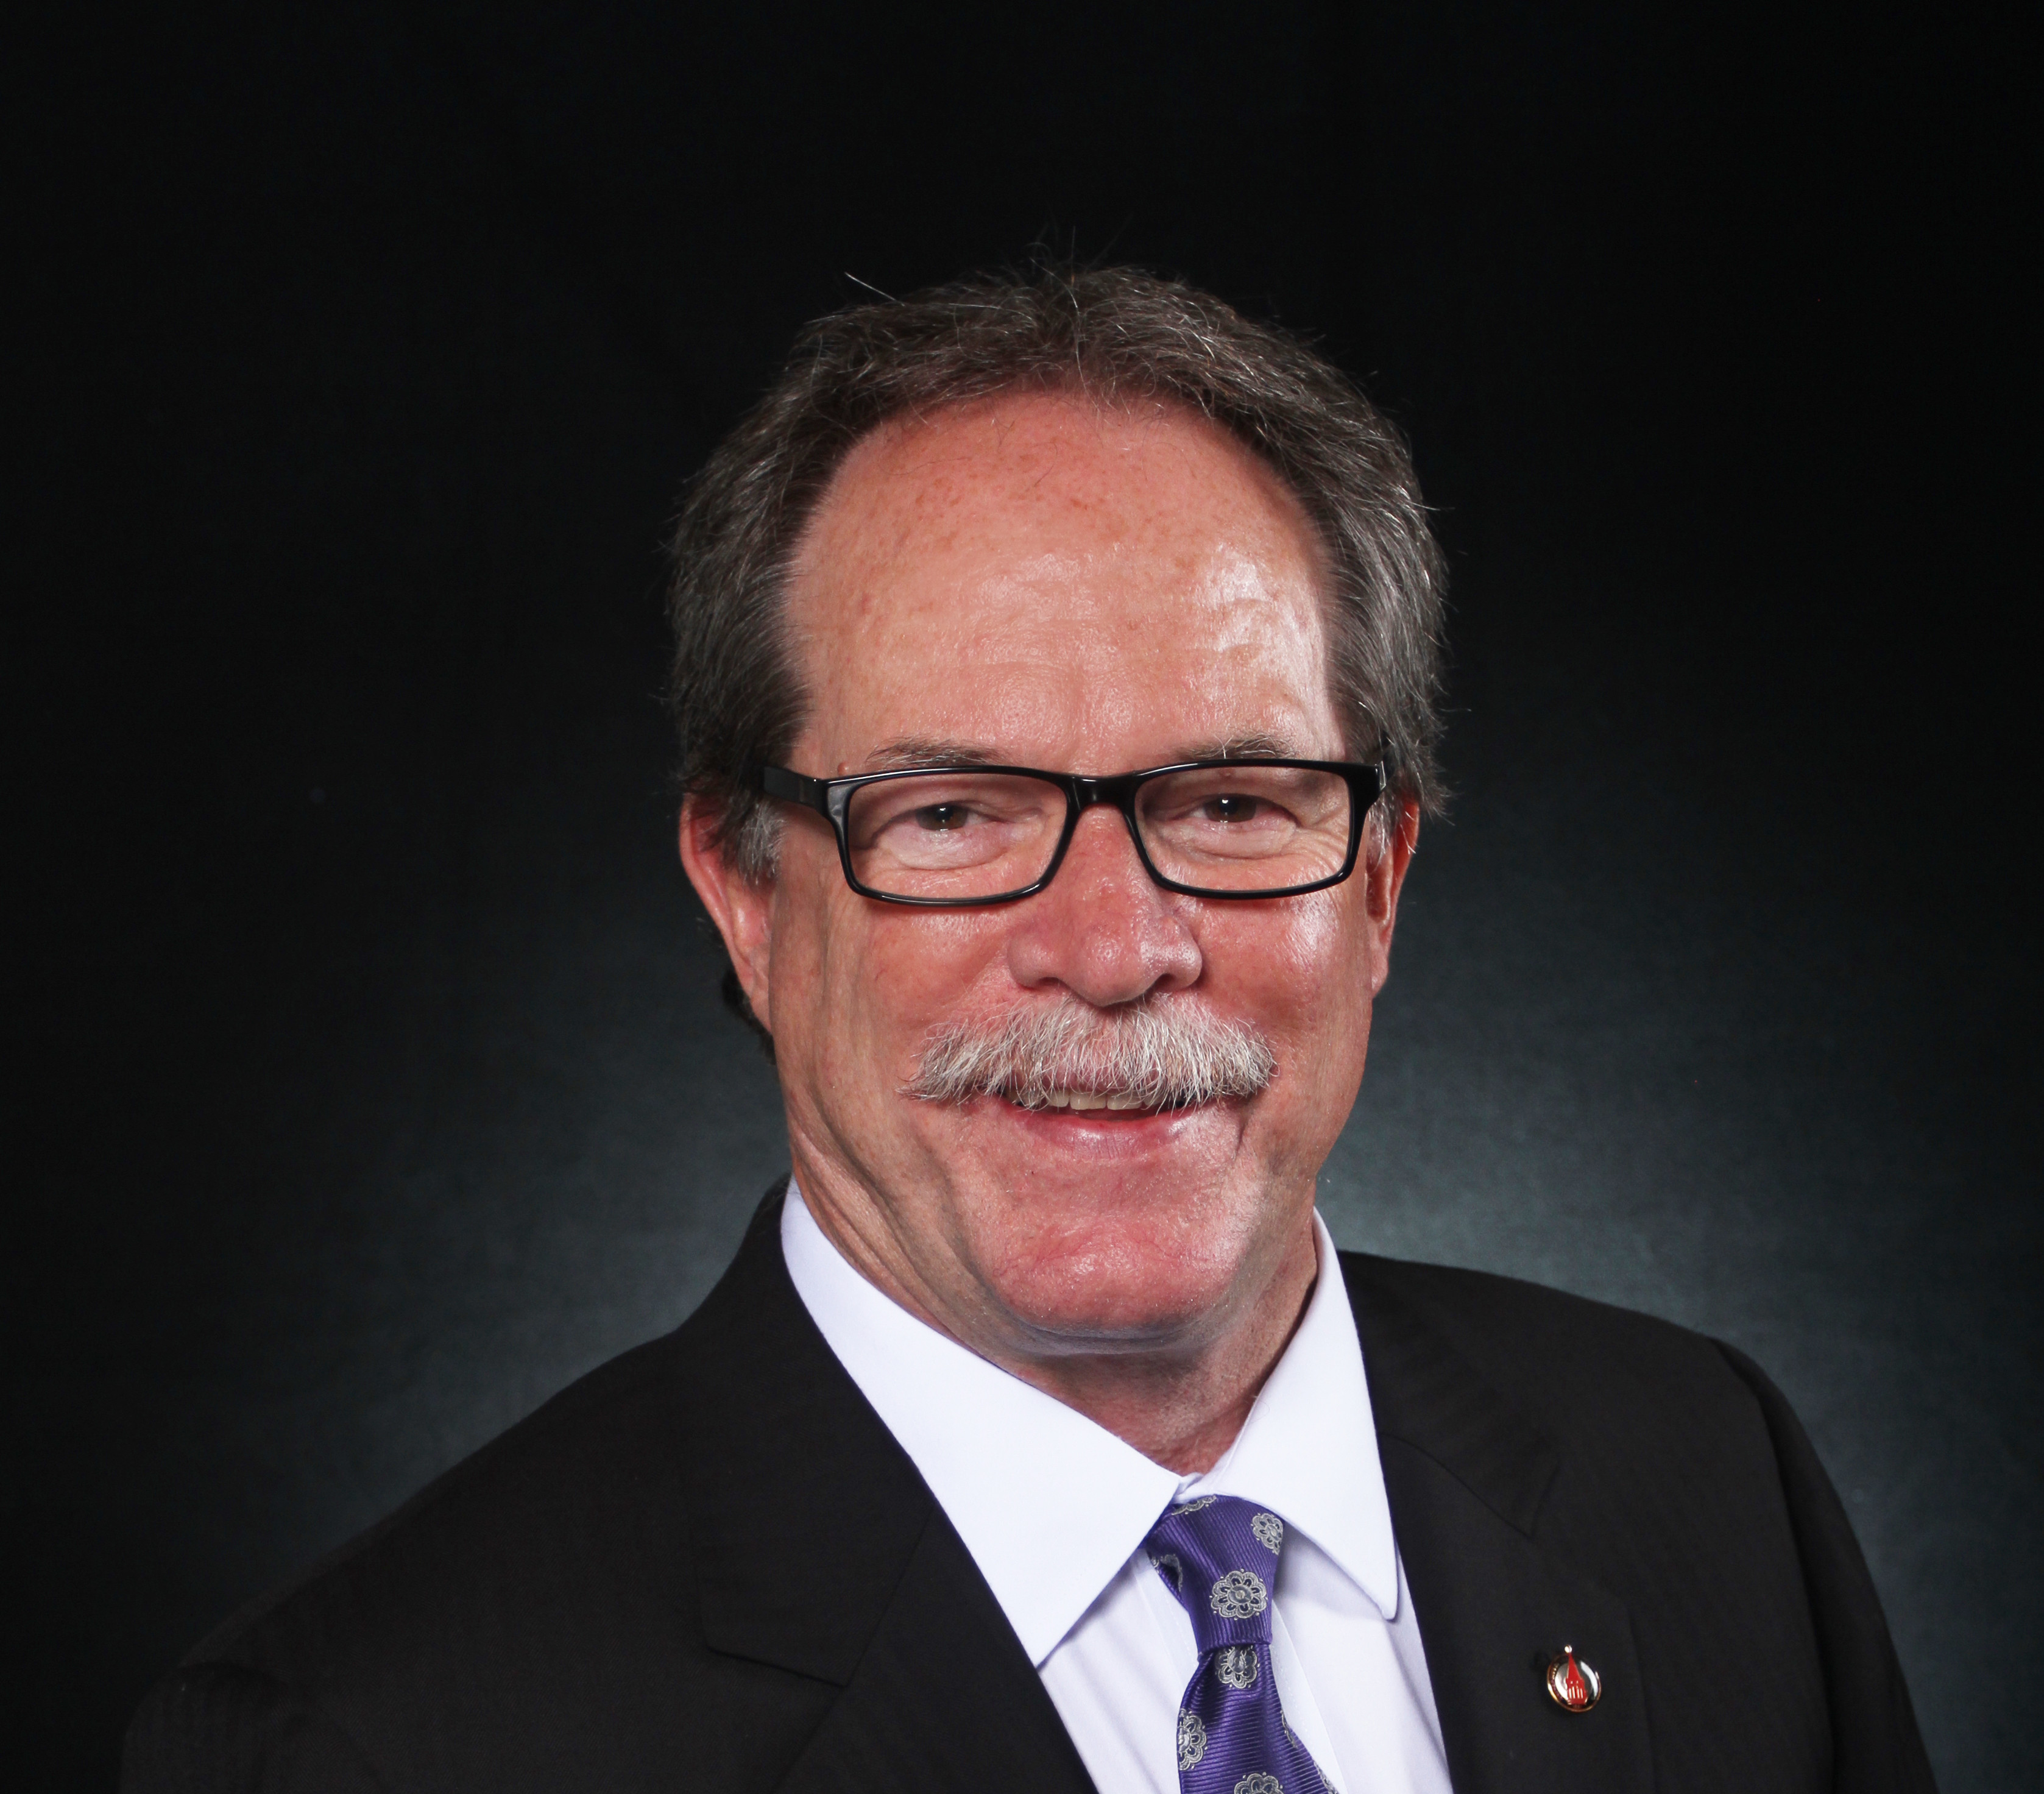 UIW Welcomes Dr. Forrest Aven, Jr., as Dean of H-E-B School of Business & Administration